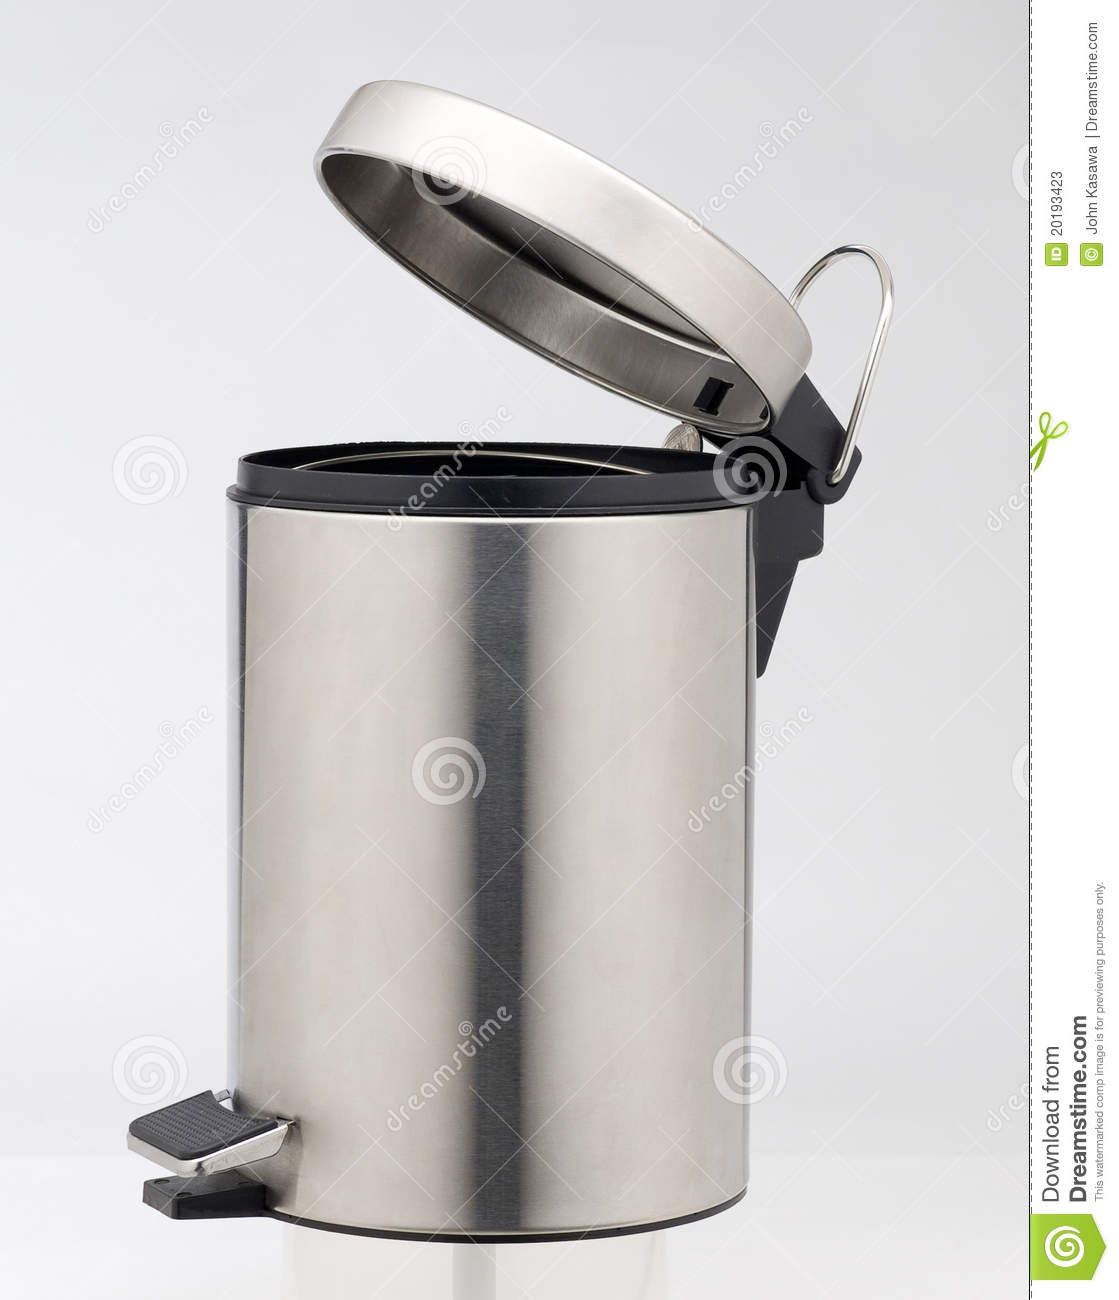 Aluminium Garbage Cans : Aluminum trash can stock photos image